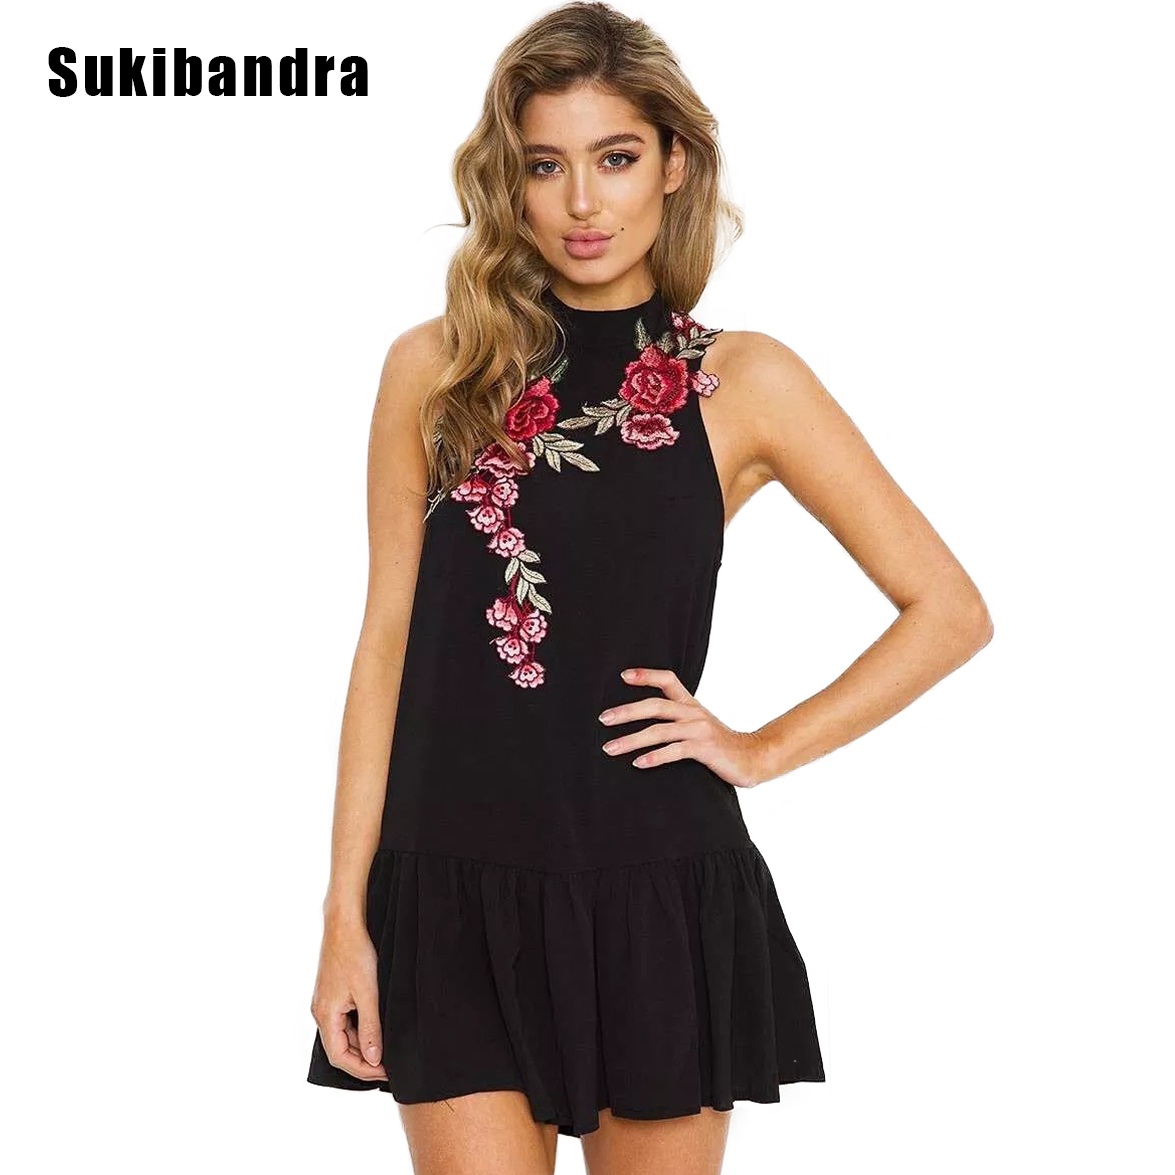 Compare Prices on Short Halter Dresses- Online Shopping/Buy Low ...